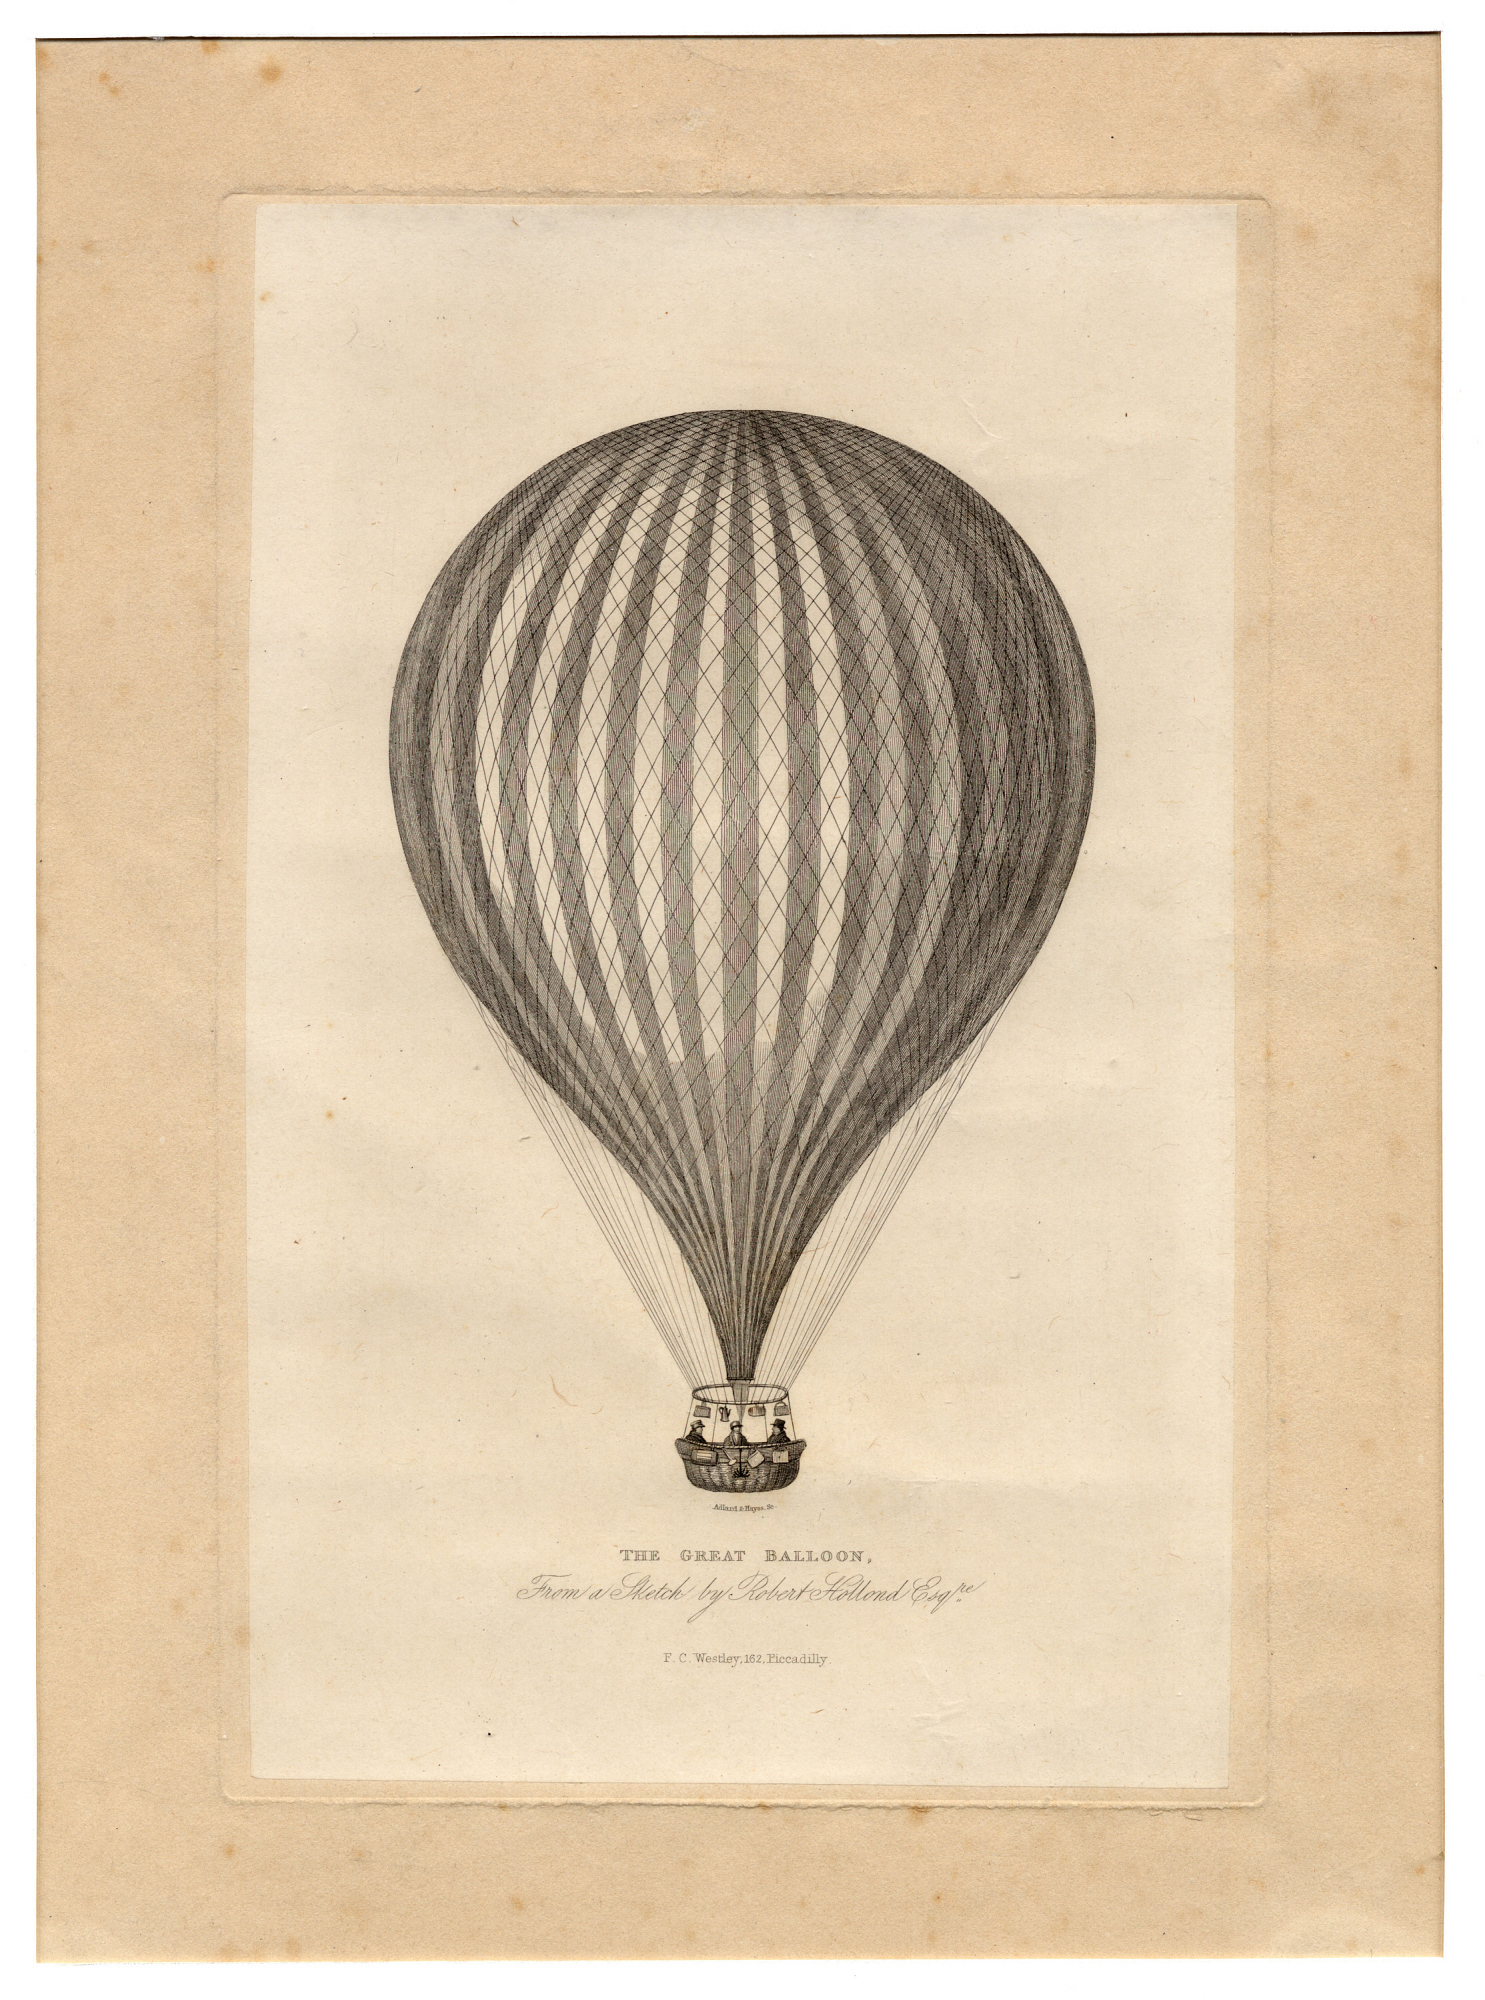 images for The Great Balloon